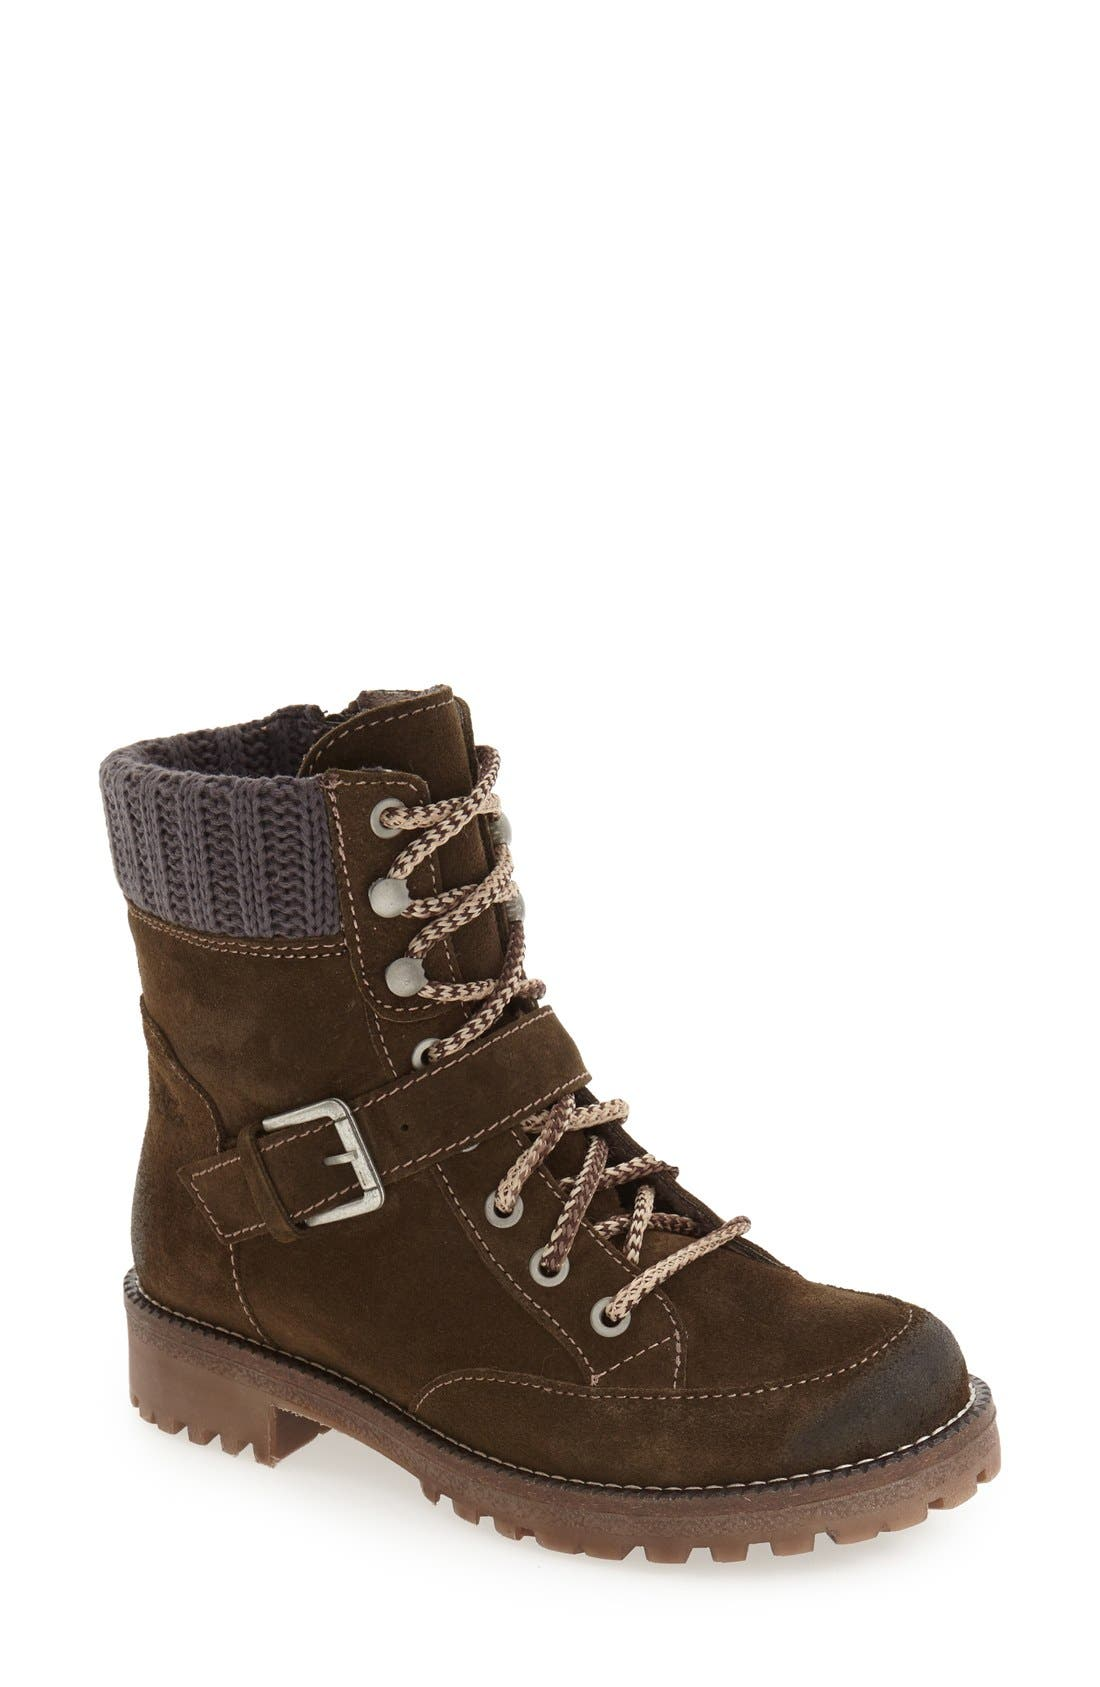 Alternate Image 1 Selected - Bos. & Co. 'Colony' Waterproof Boot (Women)